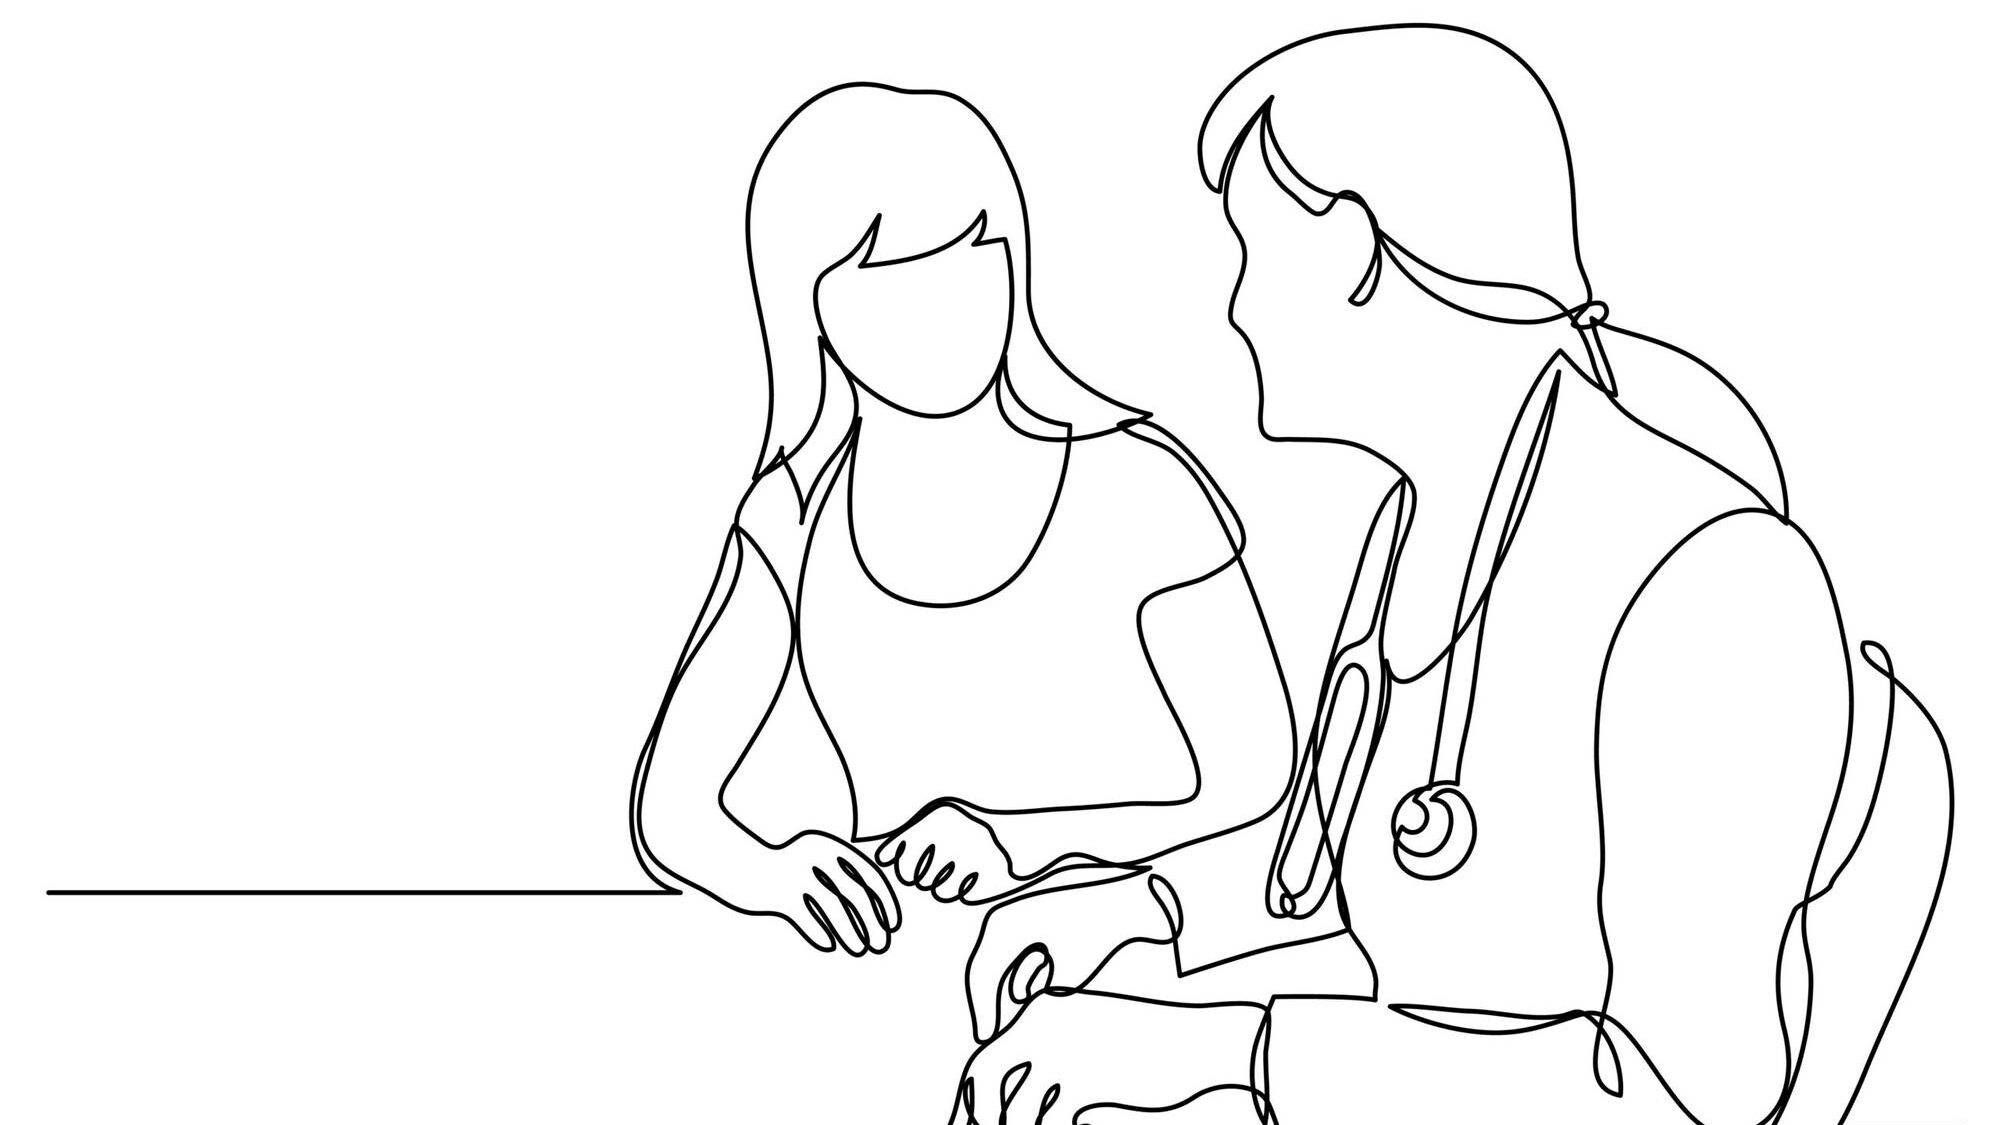 Line illustration of a female doctor speaking with a female patient, sitting at a table, egg freezing, Rewire, PBS